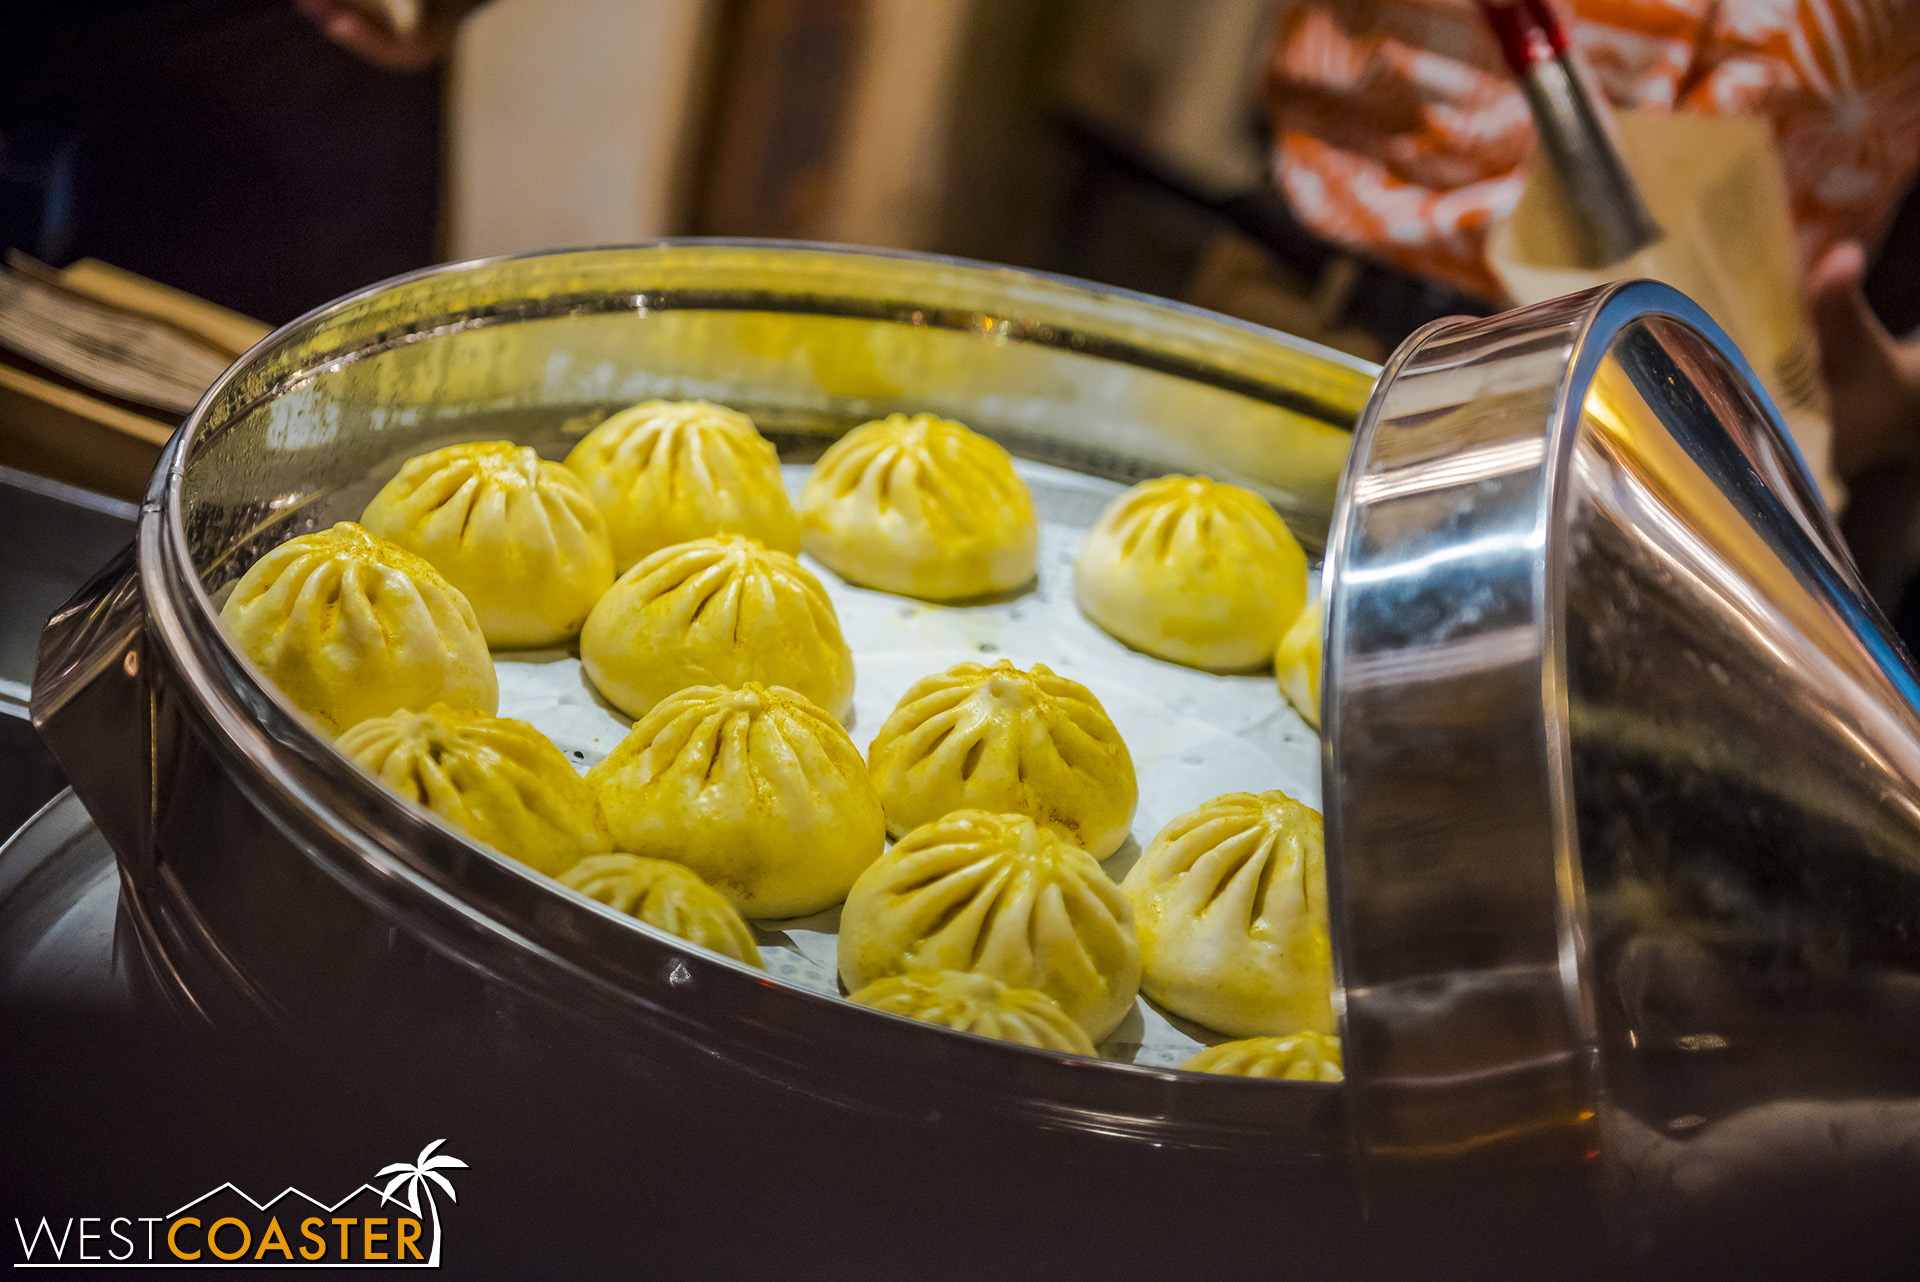 These are the Lime Chicken Baos, with butternut squash and fresh herbs, characterized by their yellow exterior.  The beef is red on top, and the vegetable buns are not colored.